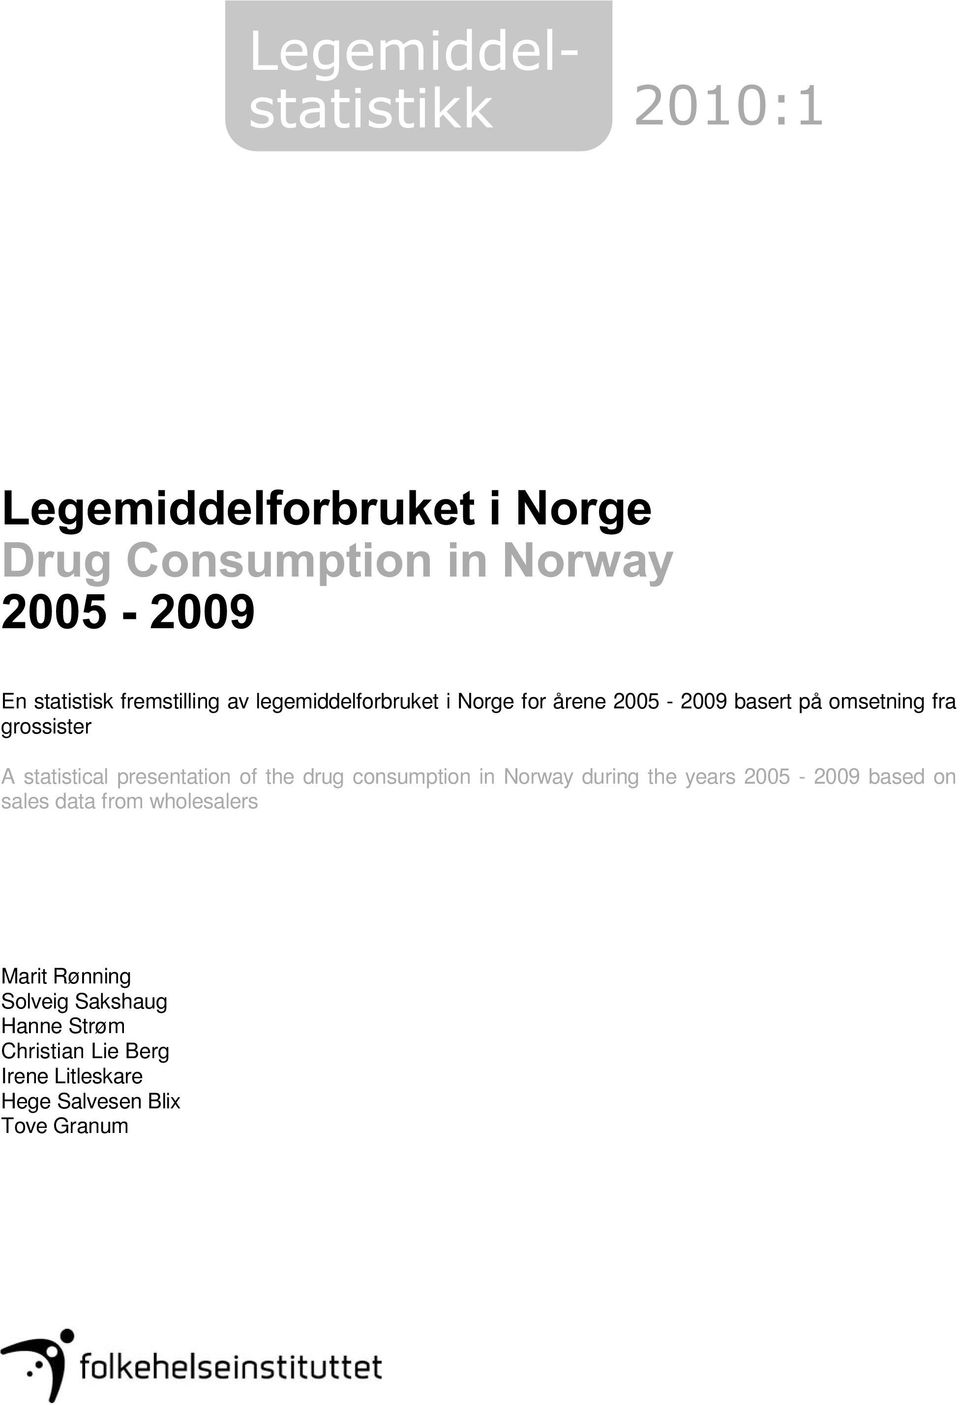 statistical presentation of the drug consumption in Norway during the years 2005-2009 based on sales data